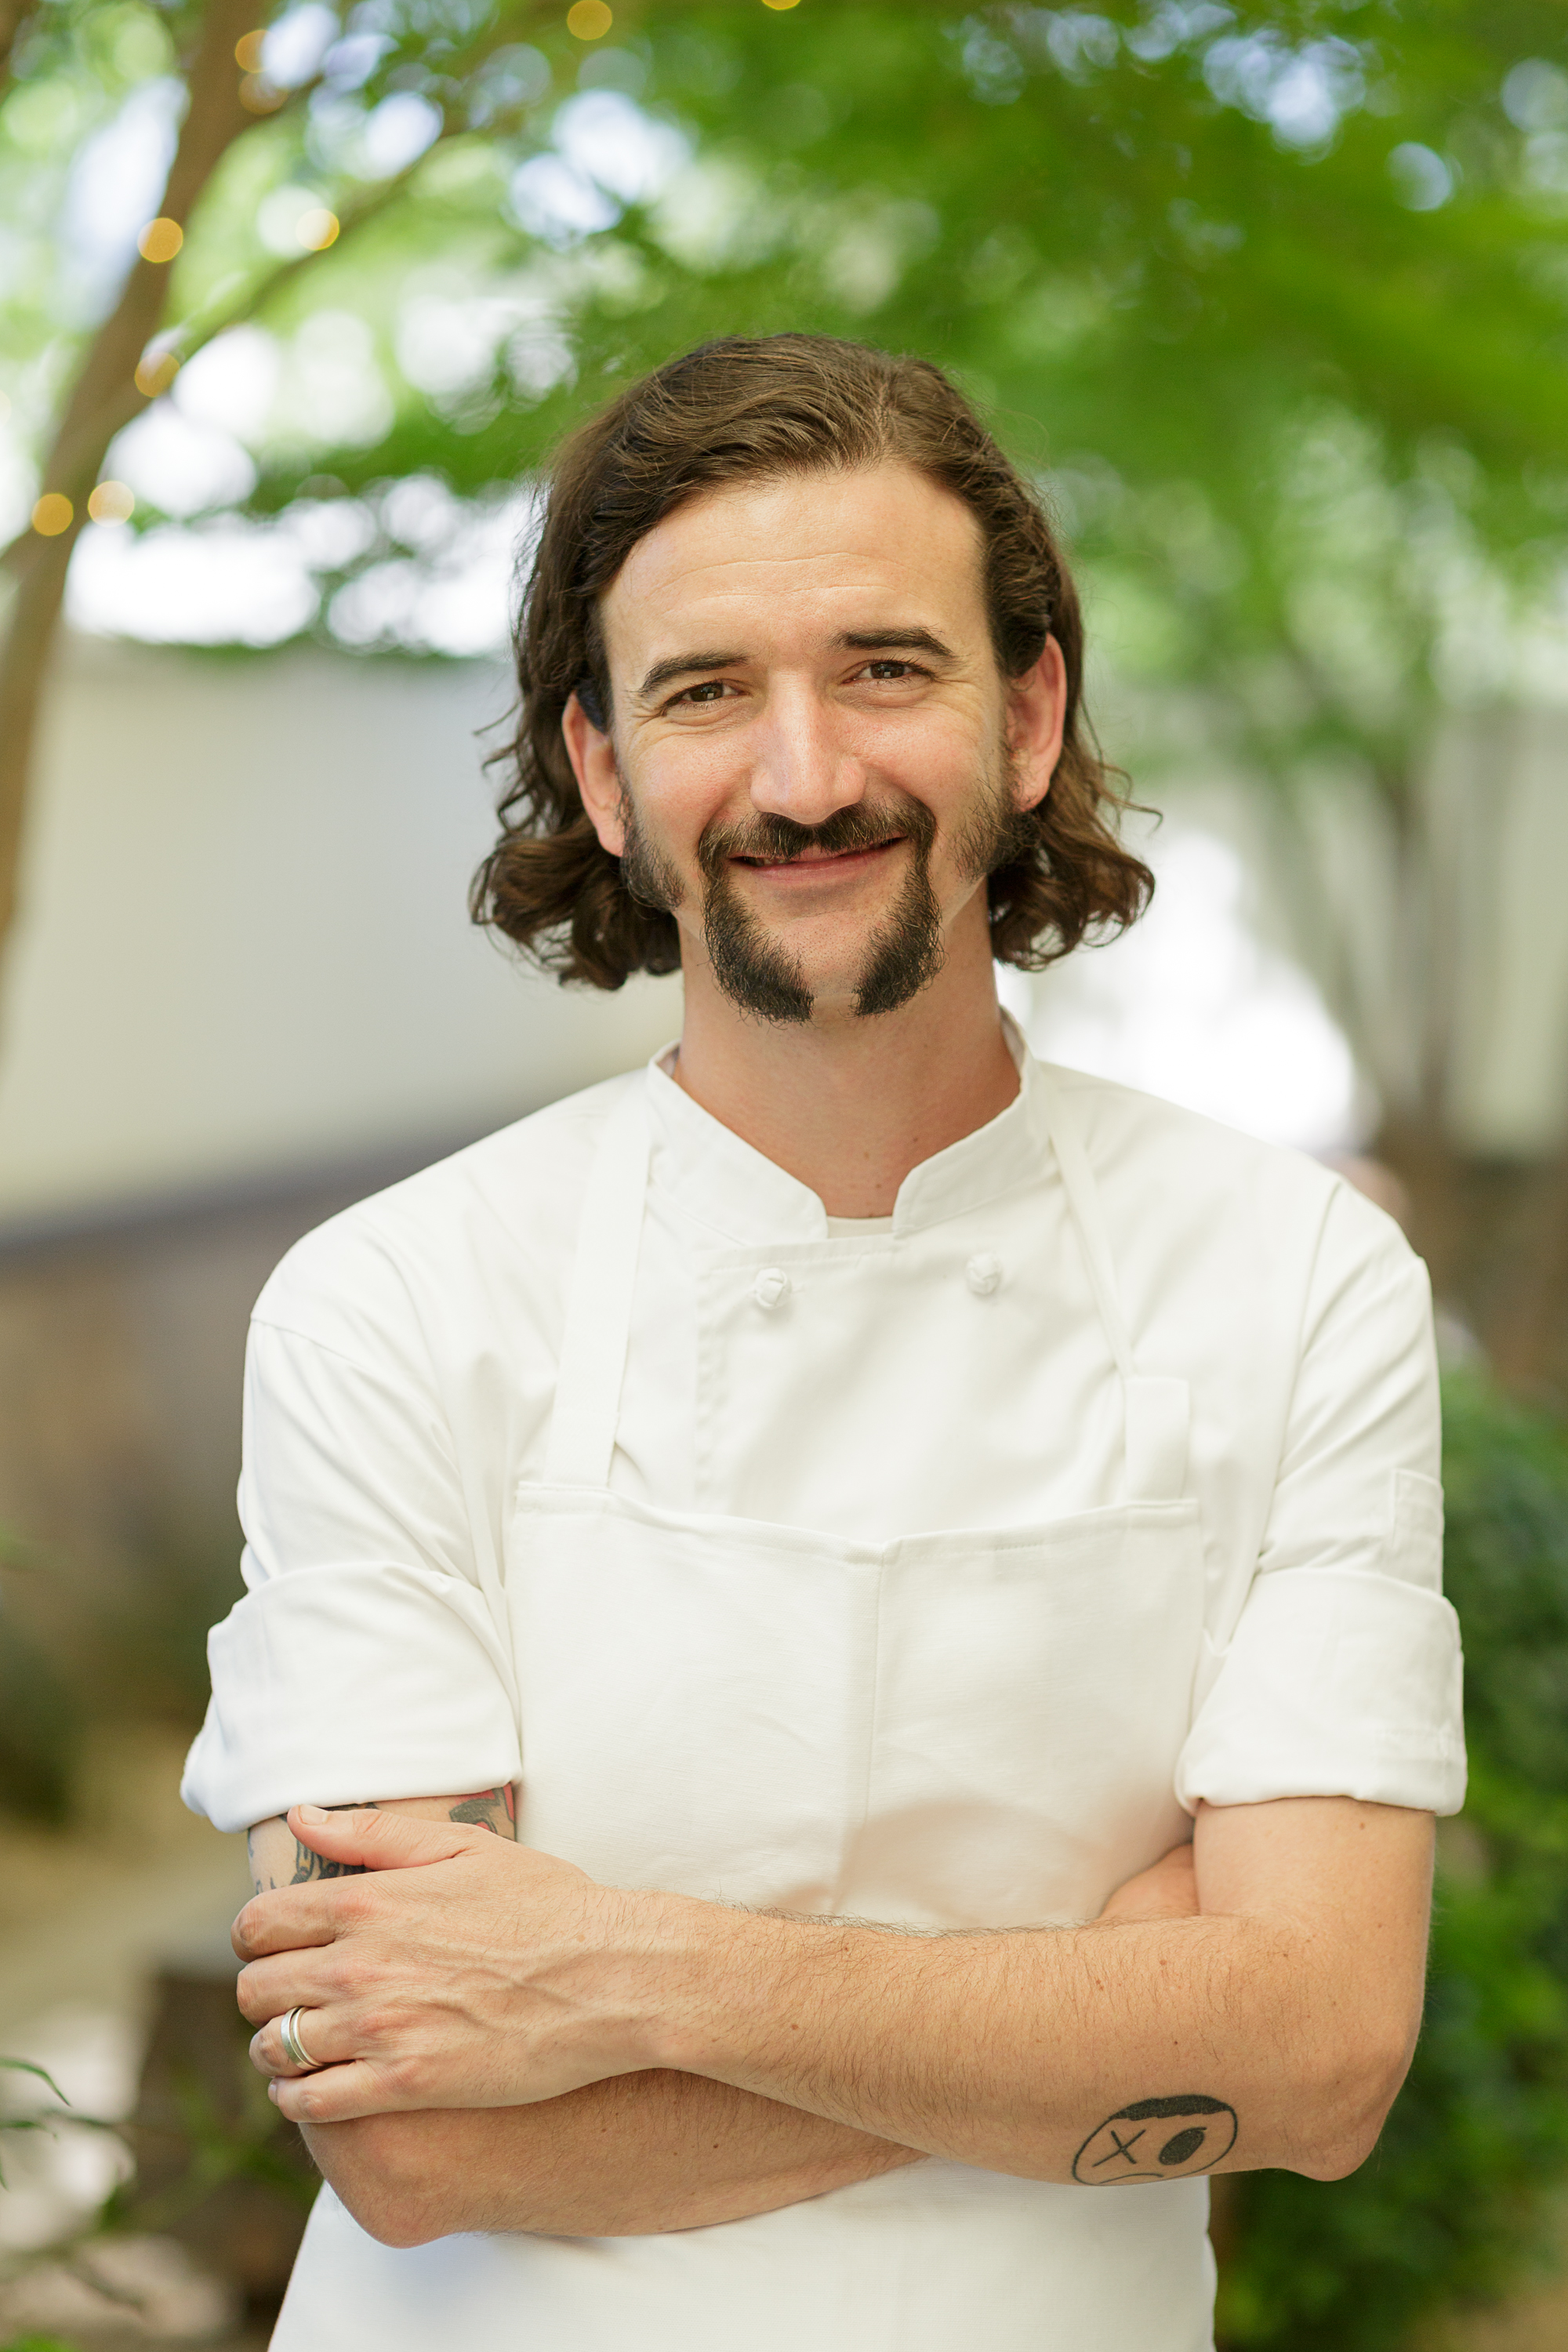 Executive Chef Trevor Kunk credit Morgan Bellinger